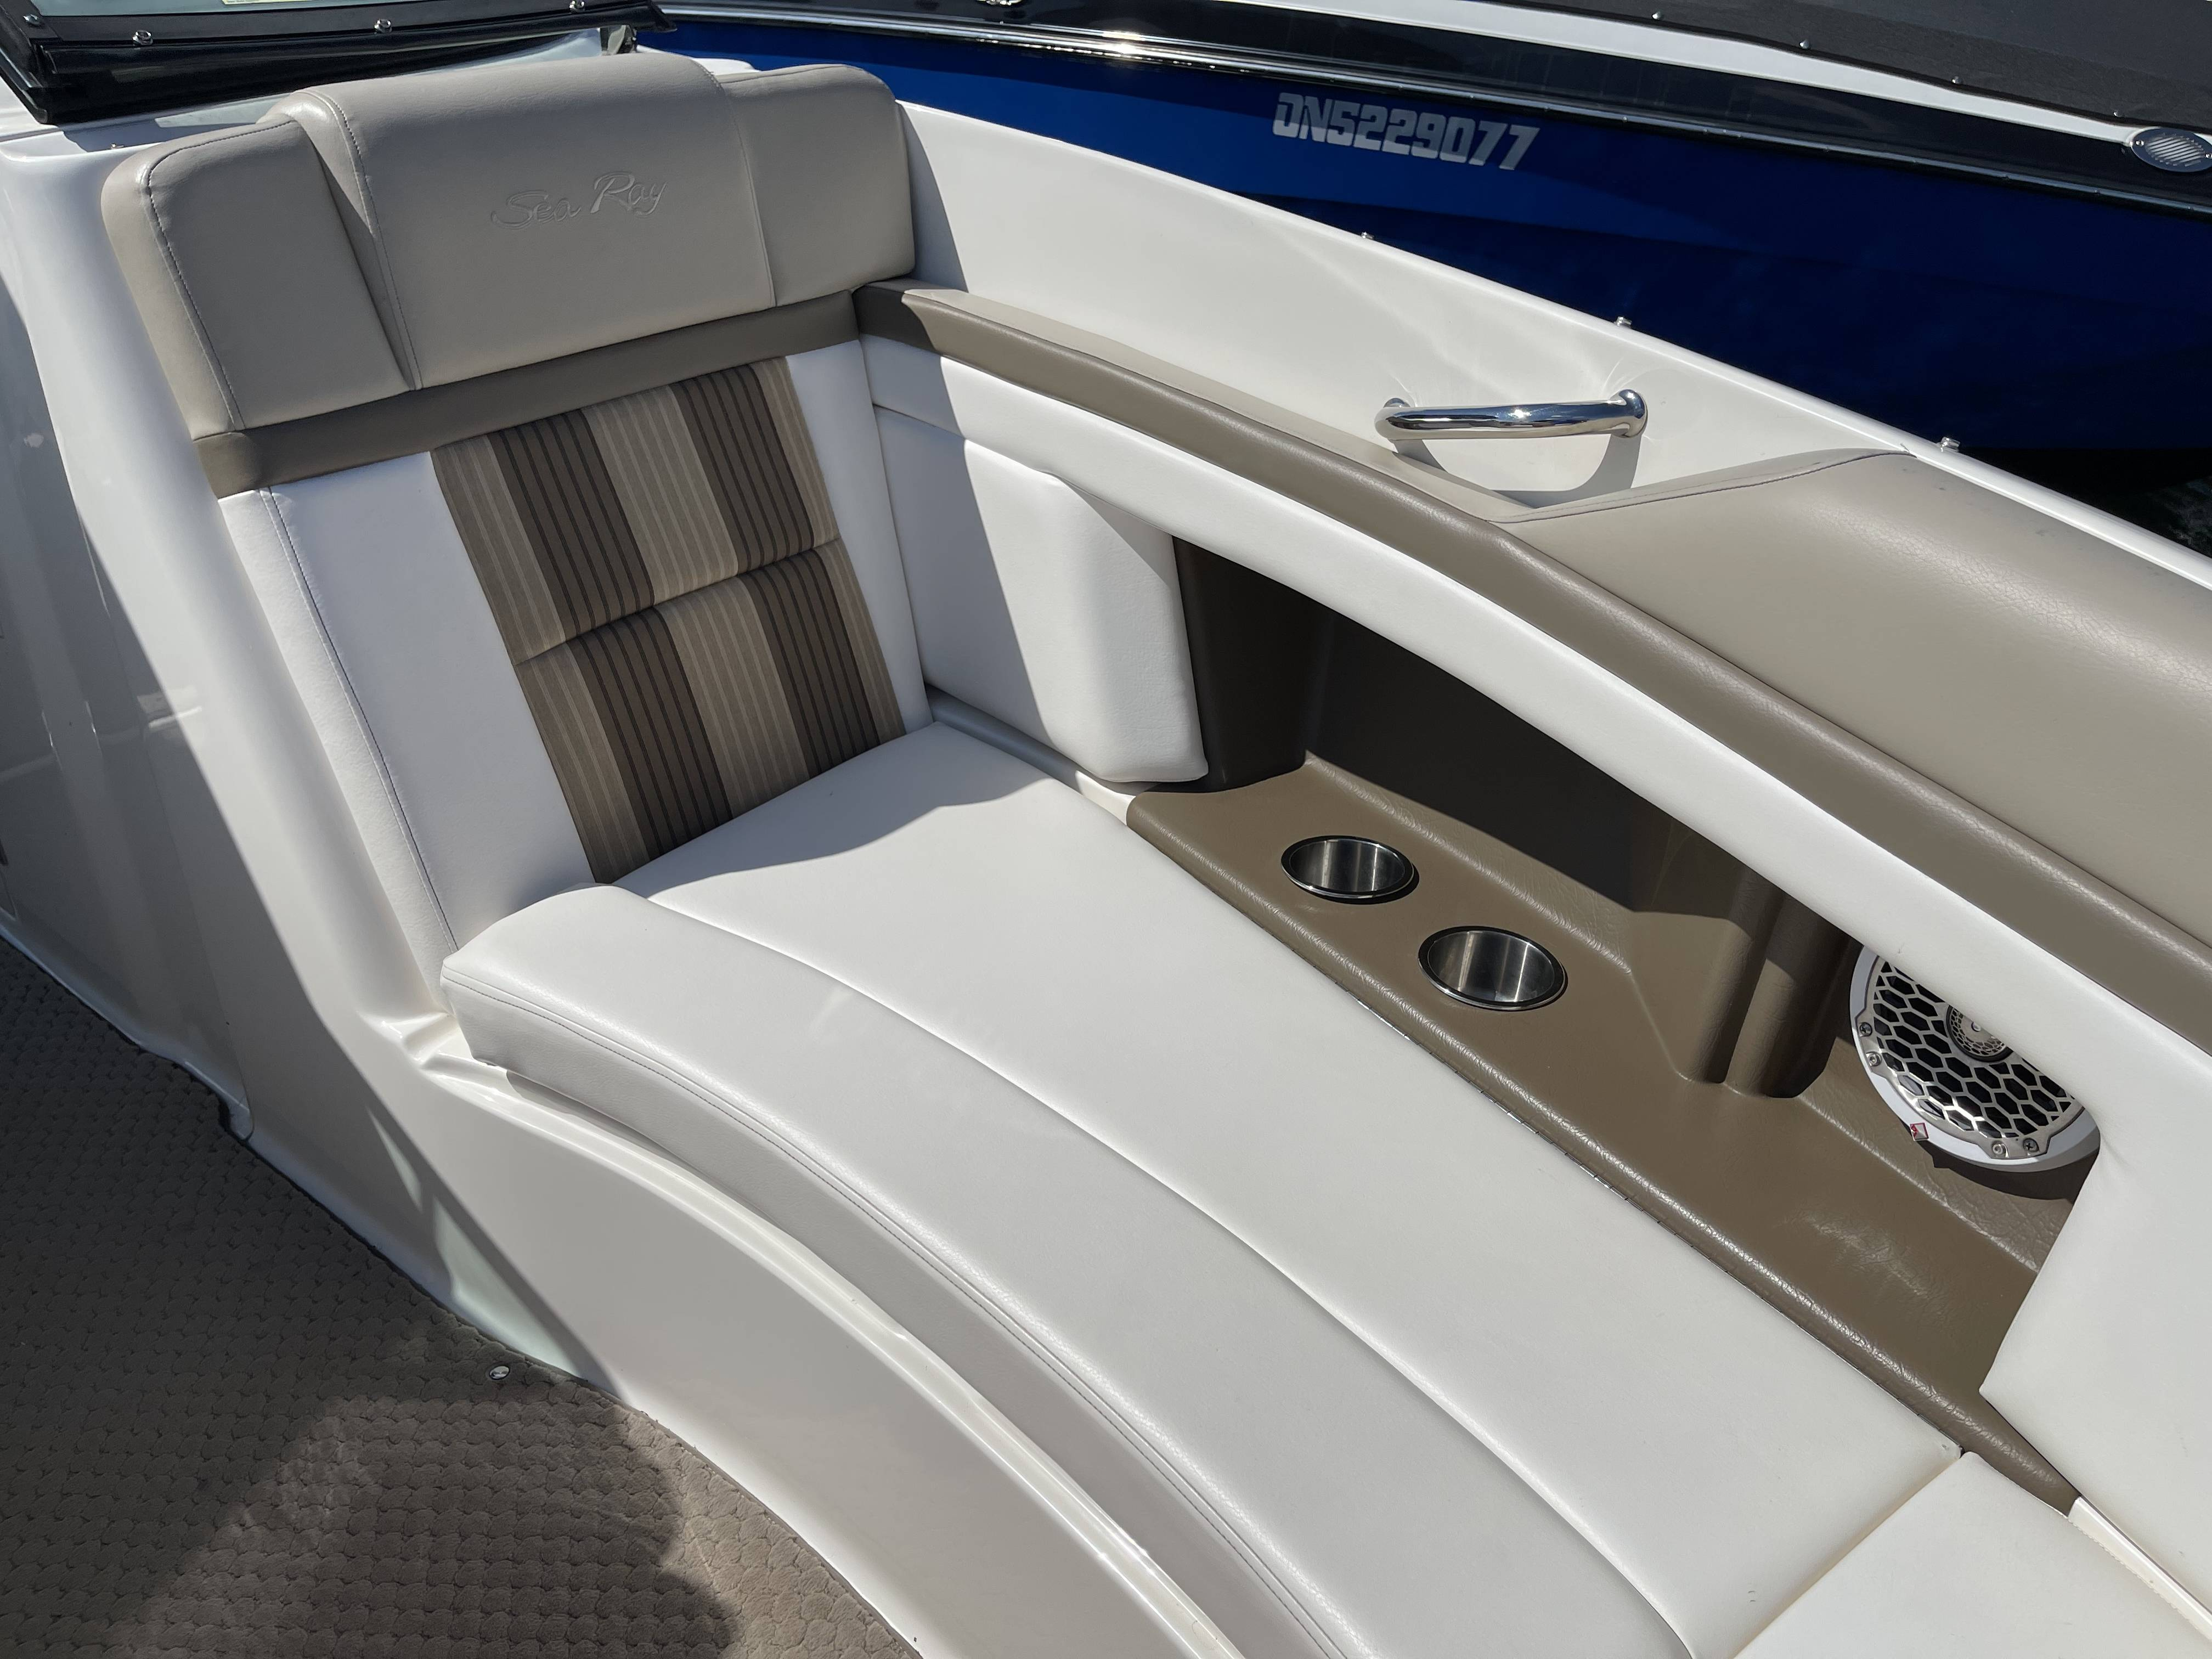 2012 Sea Ray boat for sale, model of the boat is 250 SLX & Image # 25 of 35